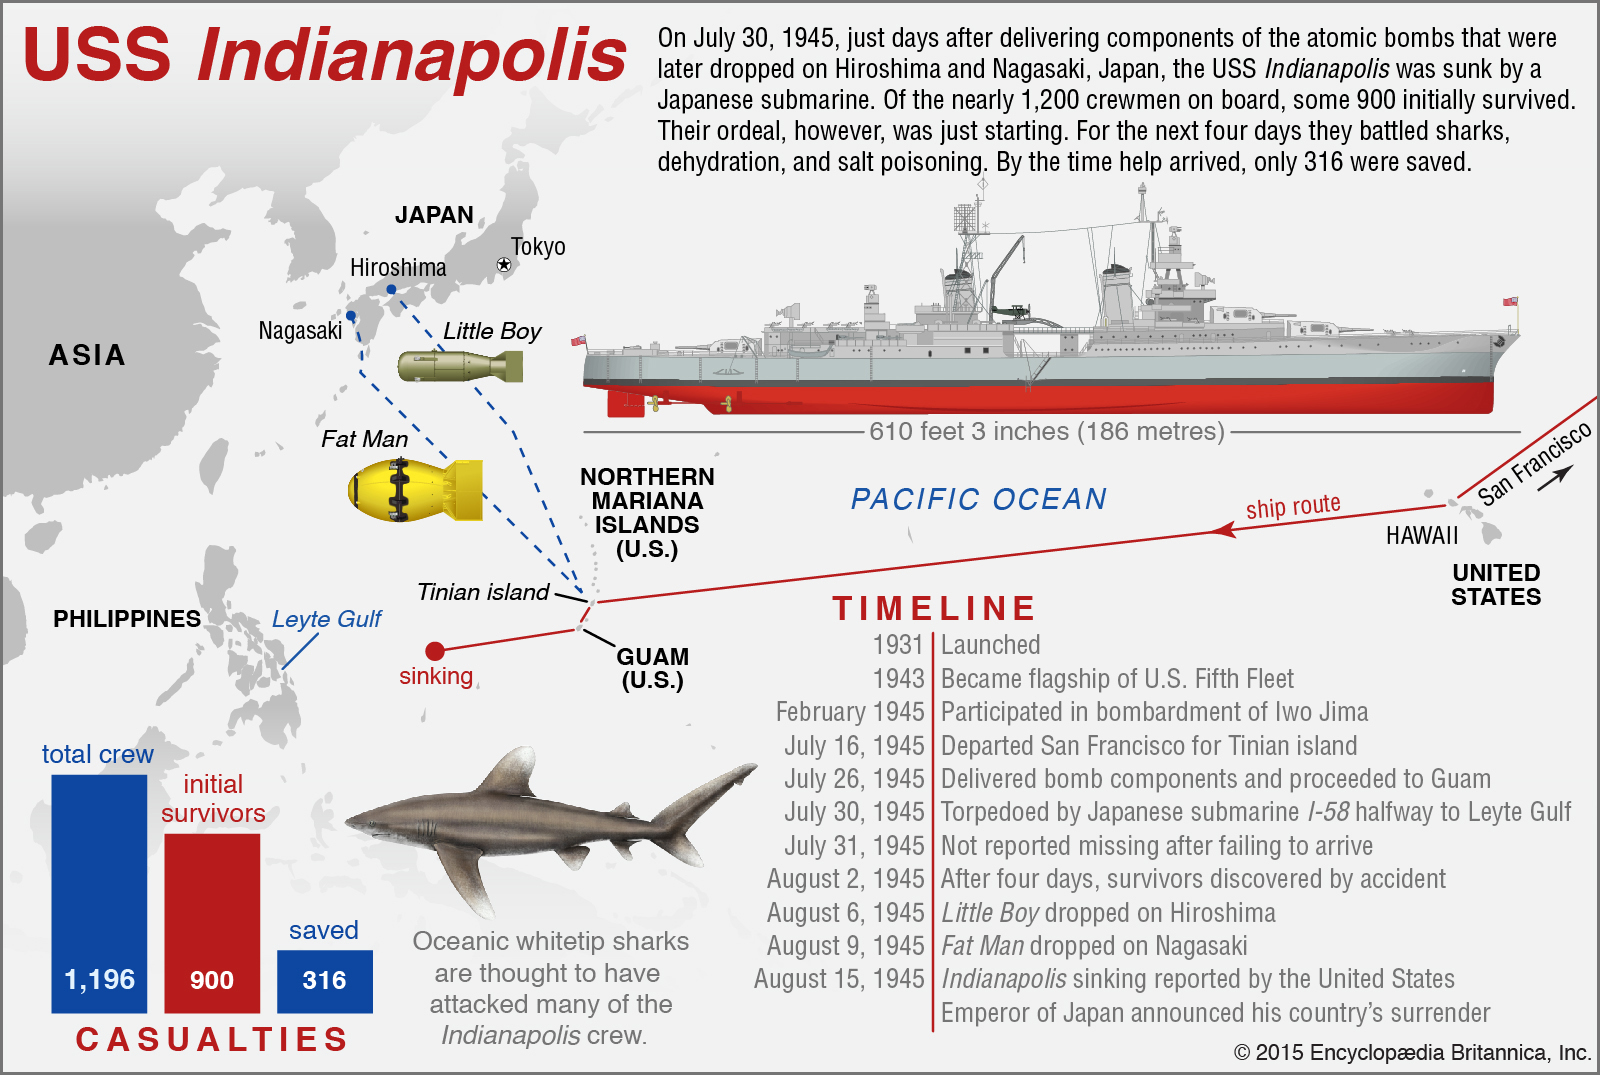 USS Indianapolis history of how it was sunk